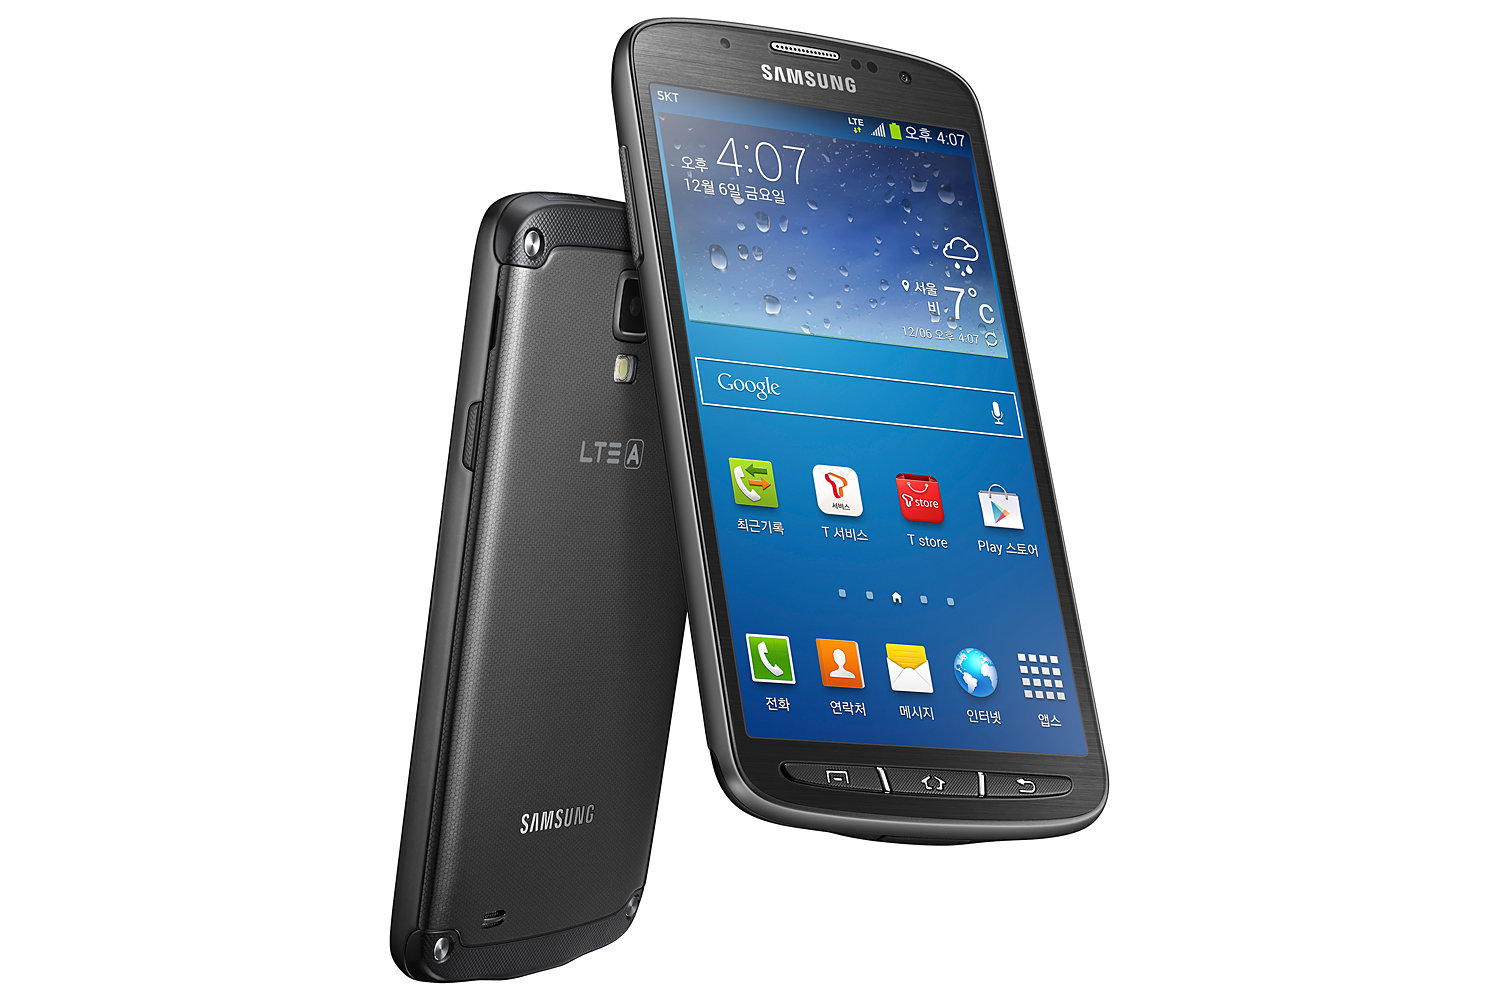 on international availability of the Samsung Galaxy S4 Active LTE-A